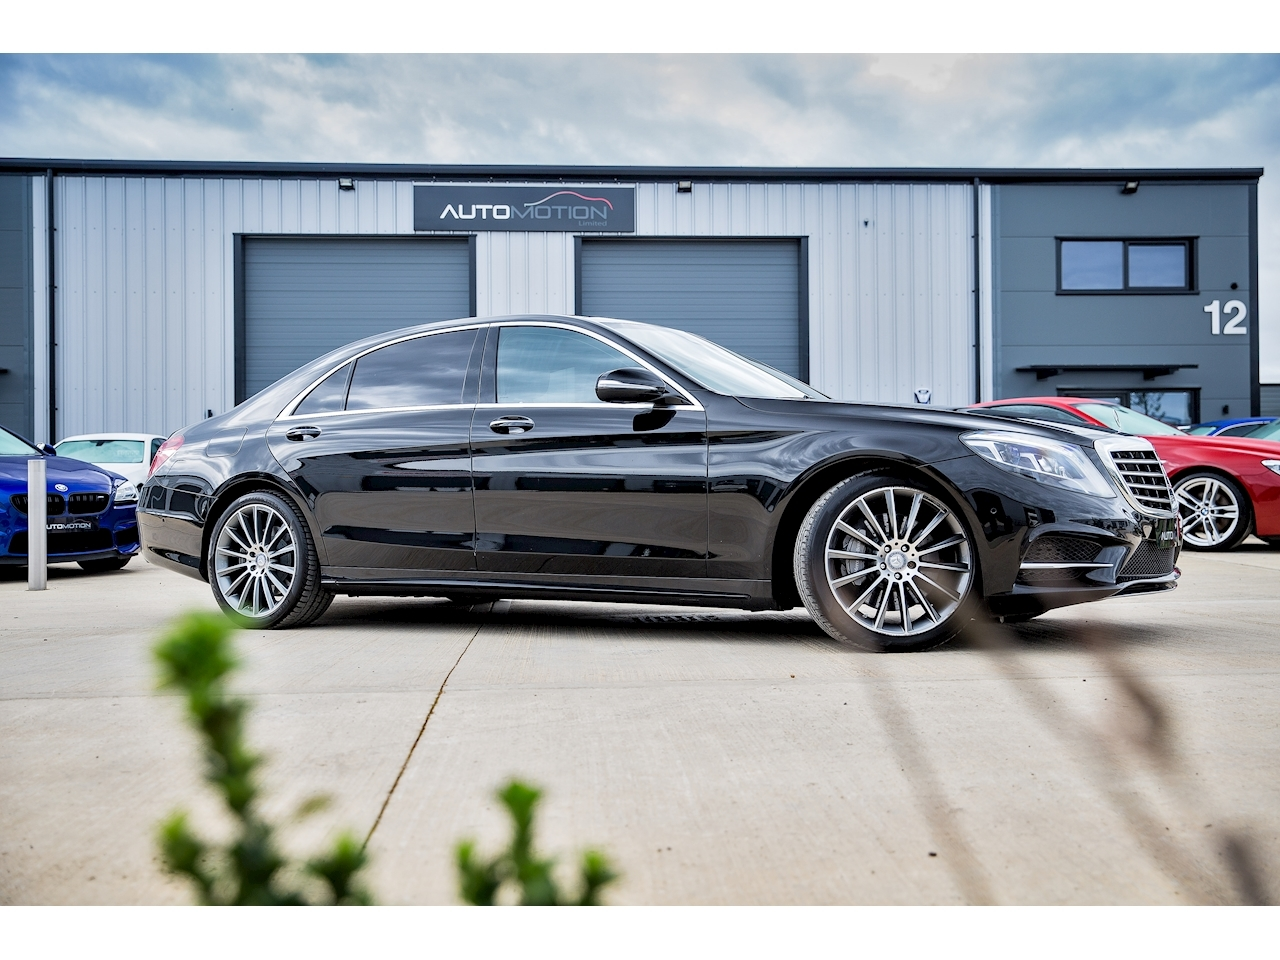 S350 D Limo Amg Line 3.0 4dr Saloon Automatic Diesel